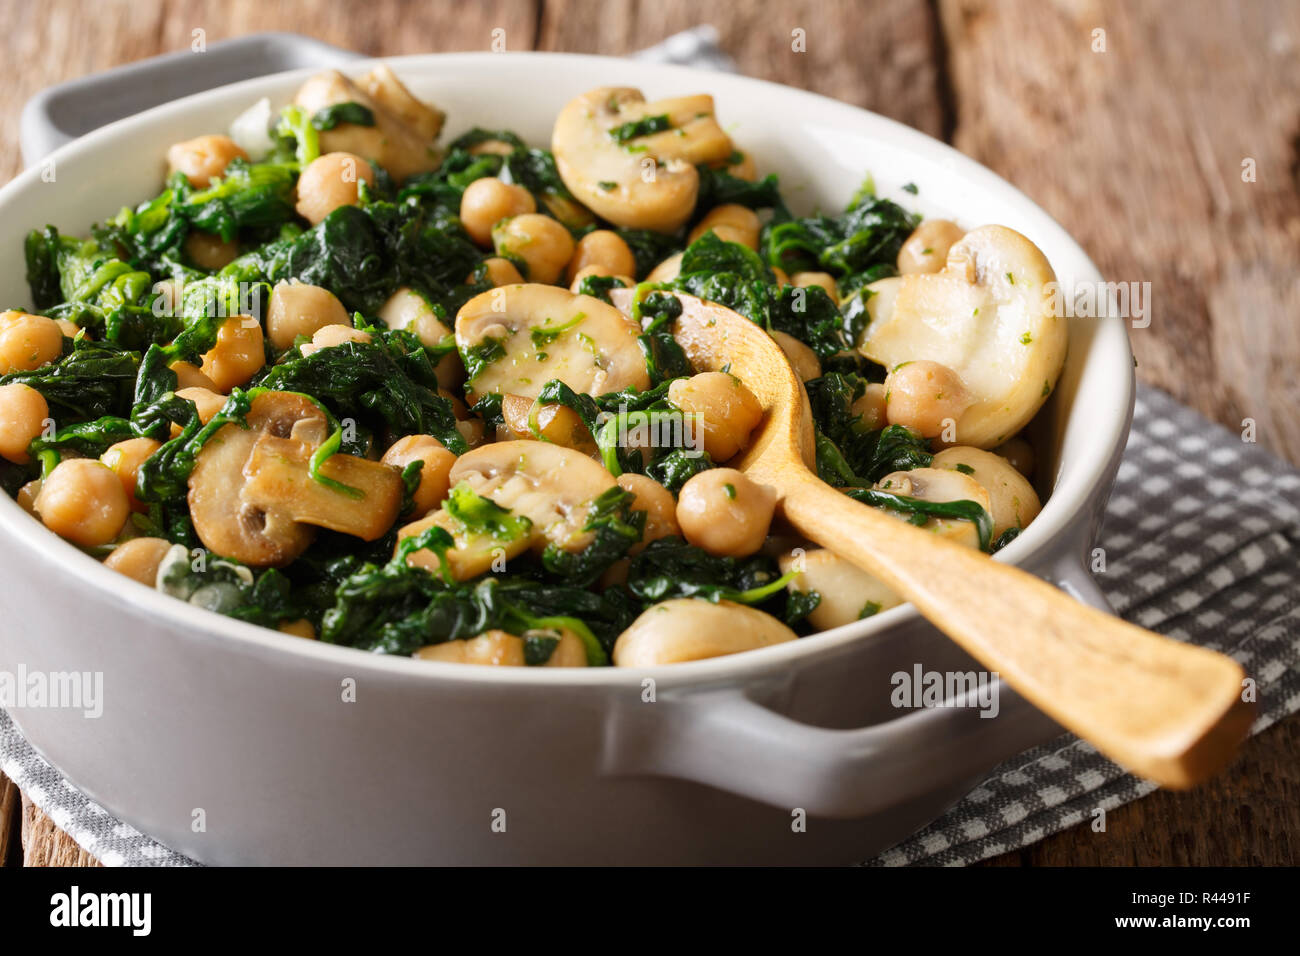 Healthy vegetarian food of chickpeas with spinach and mushrooms close-up in a bowl on the table. horizontal Stock Photo